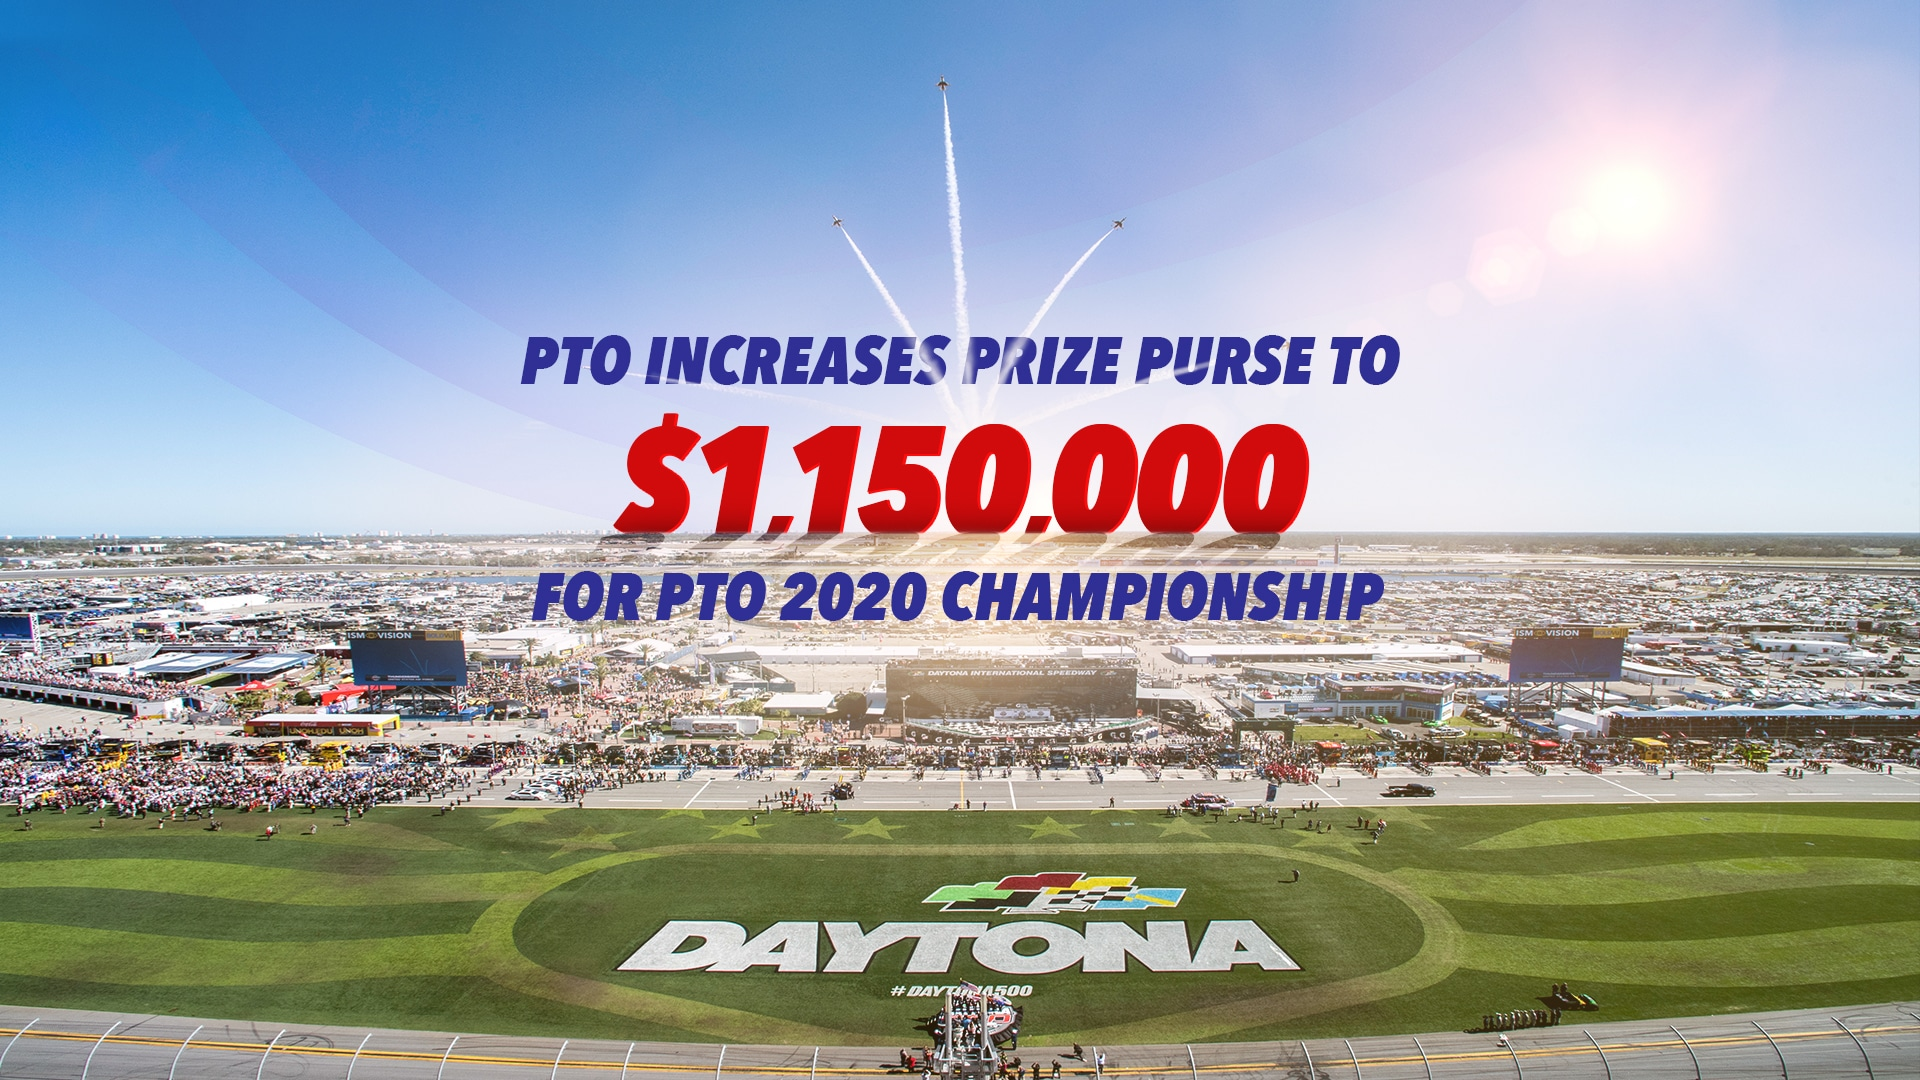 PTO 2020 Championship announce increase in prize purse